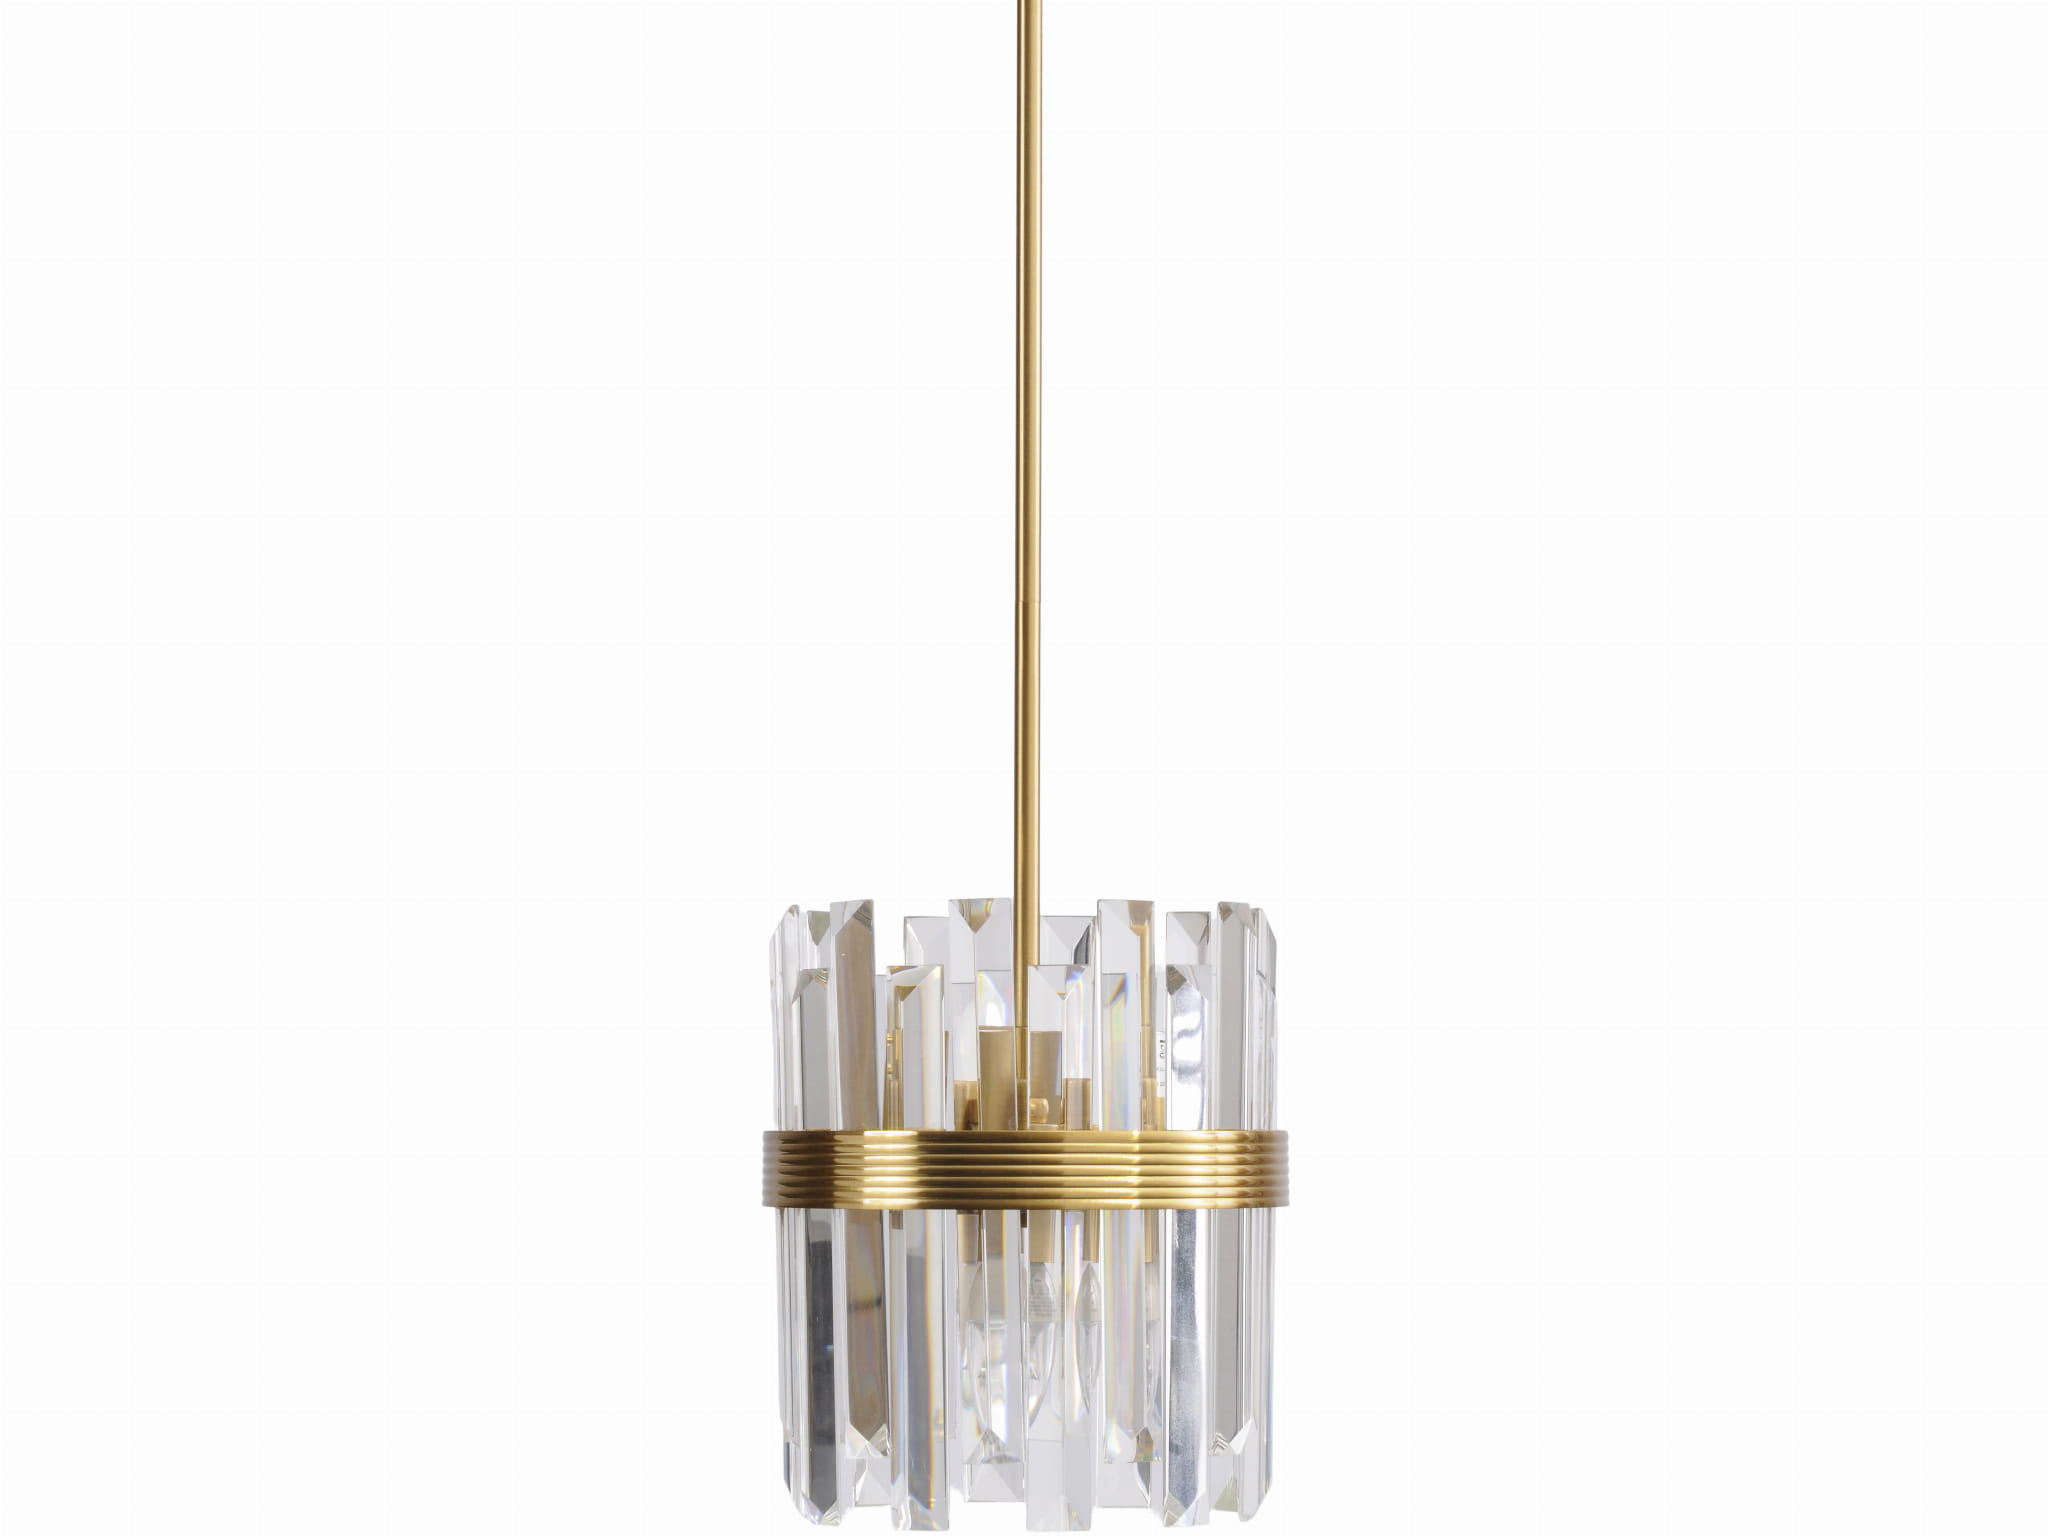 Rochester Crystal Pendant Lamp 140 Cm Round With Bronze Details K B London